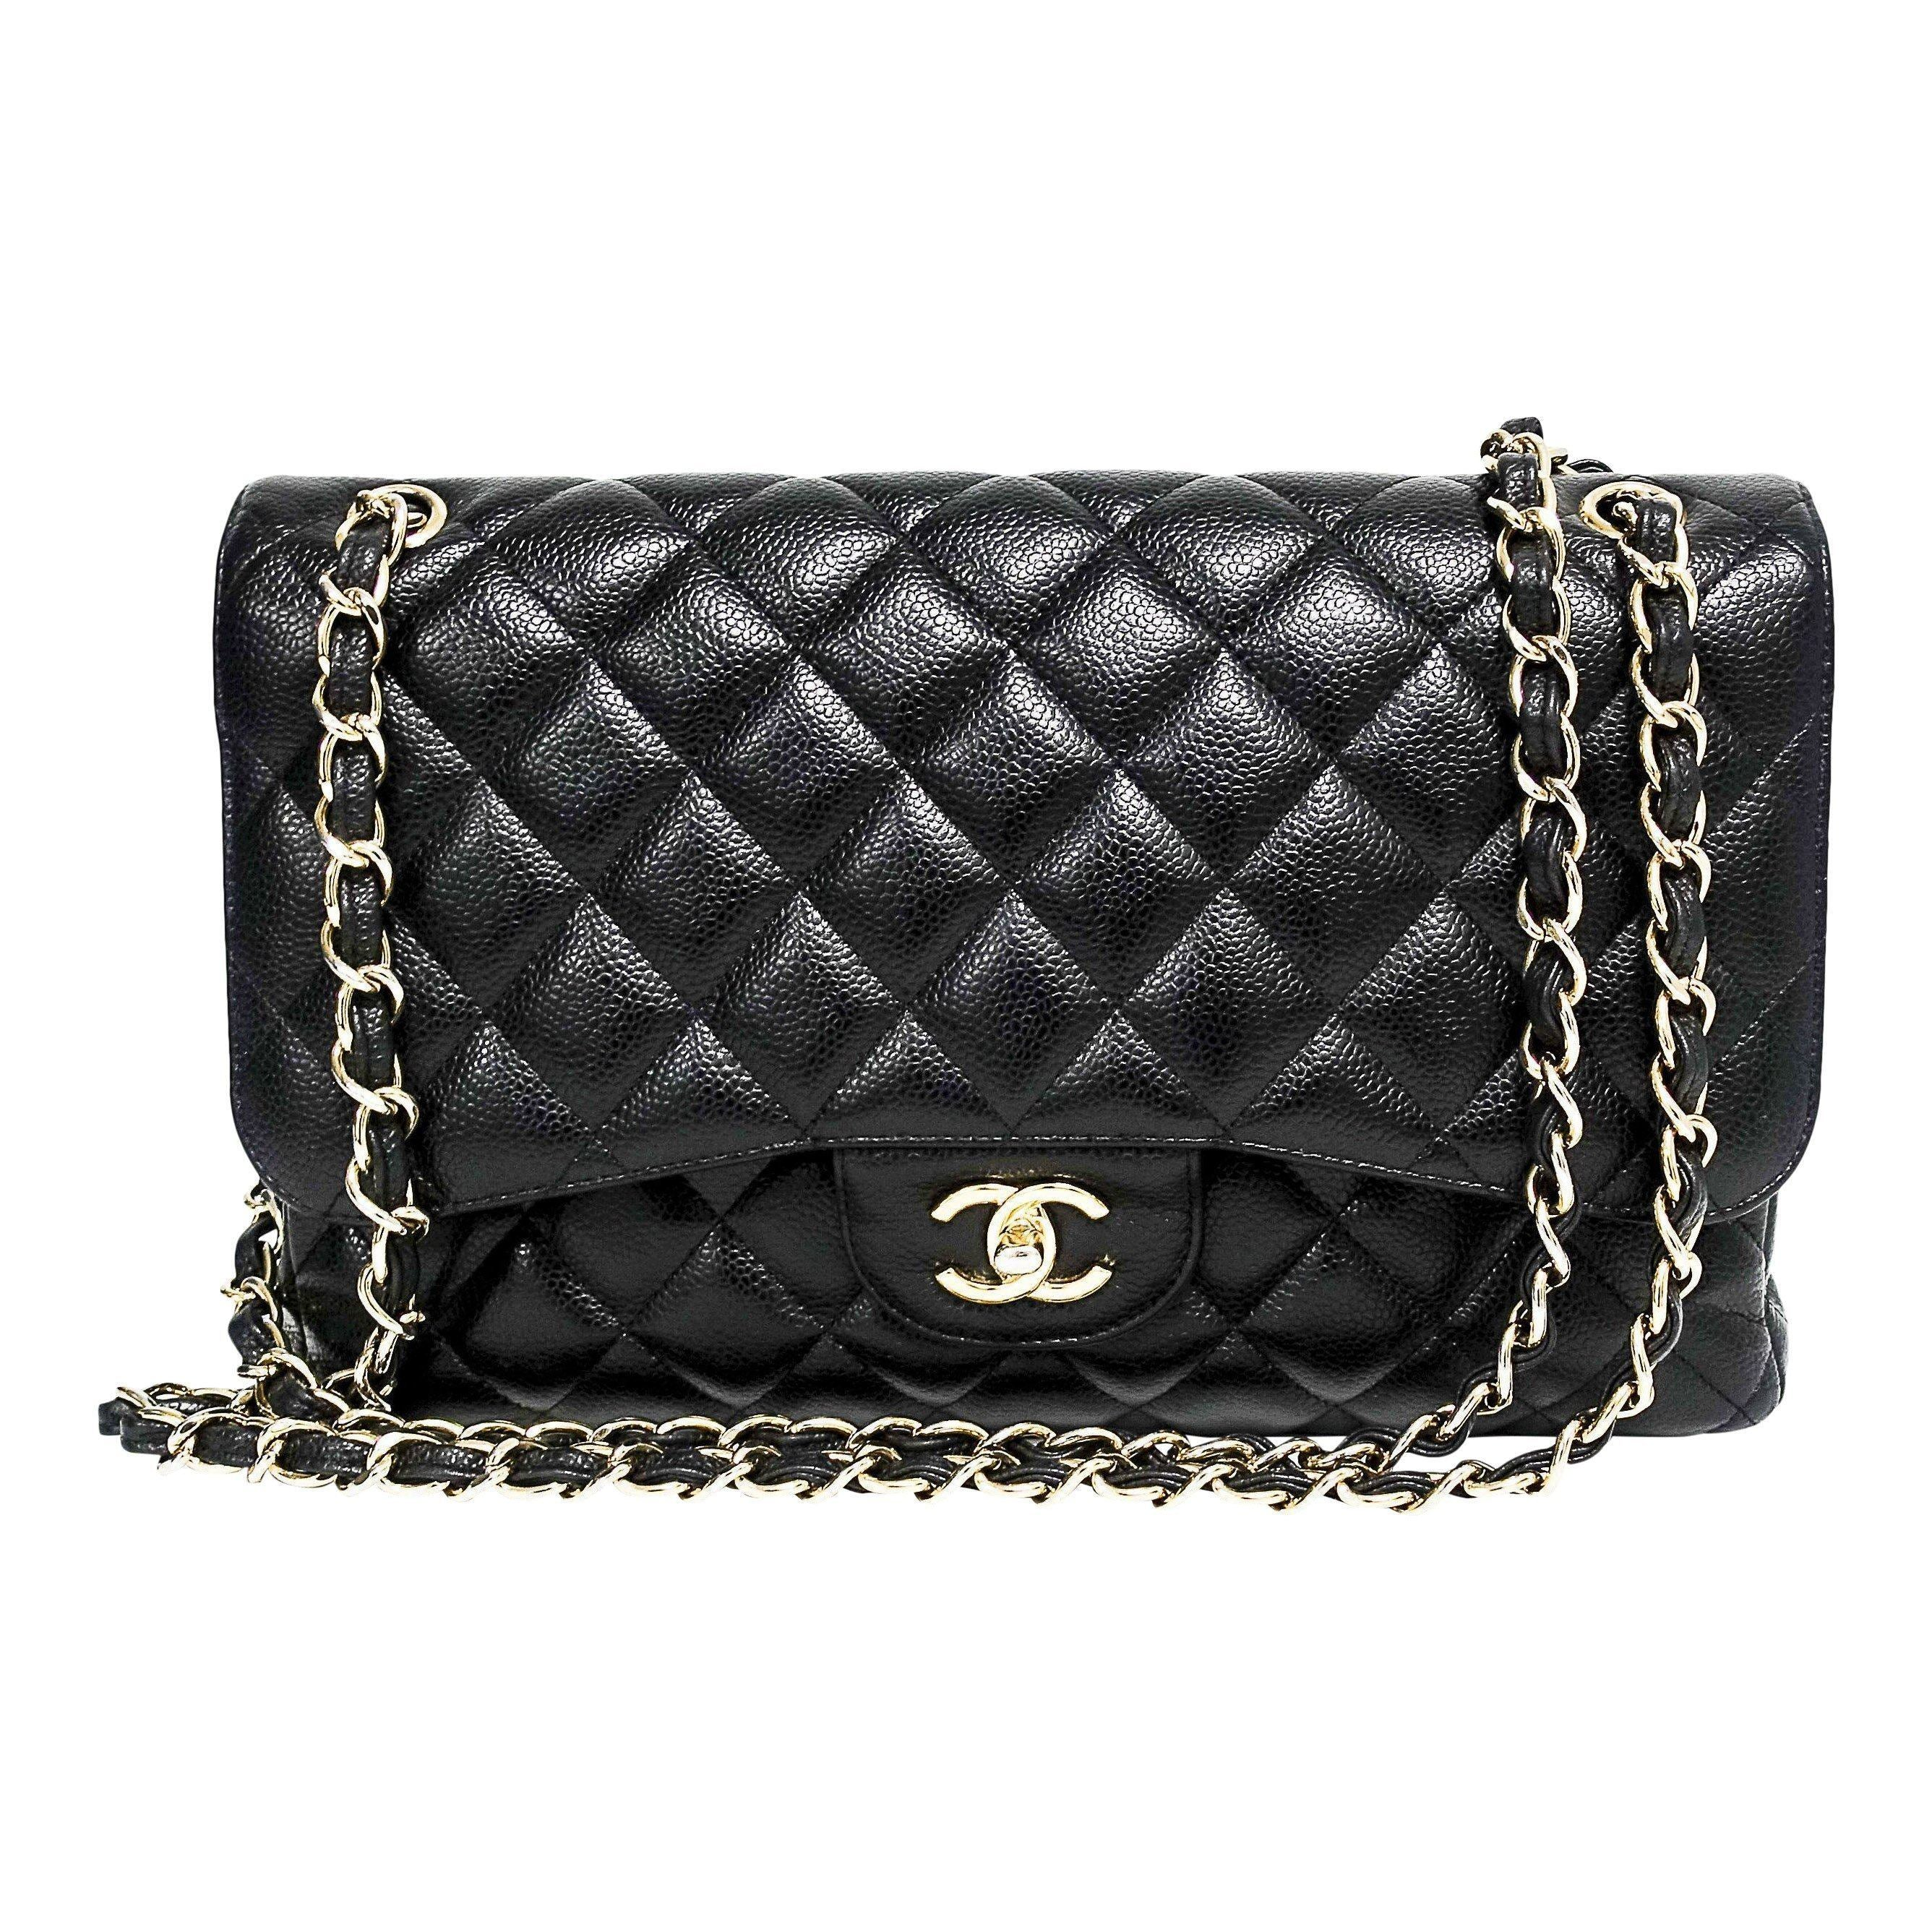 8d4d709d5f75 Chanel Caviar Classic Jumbo Double Flap Bag– Oliver Jewellery